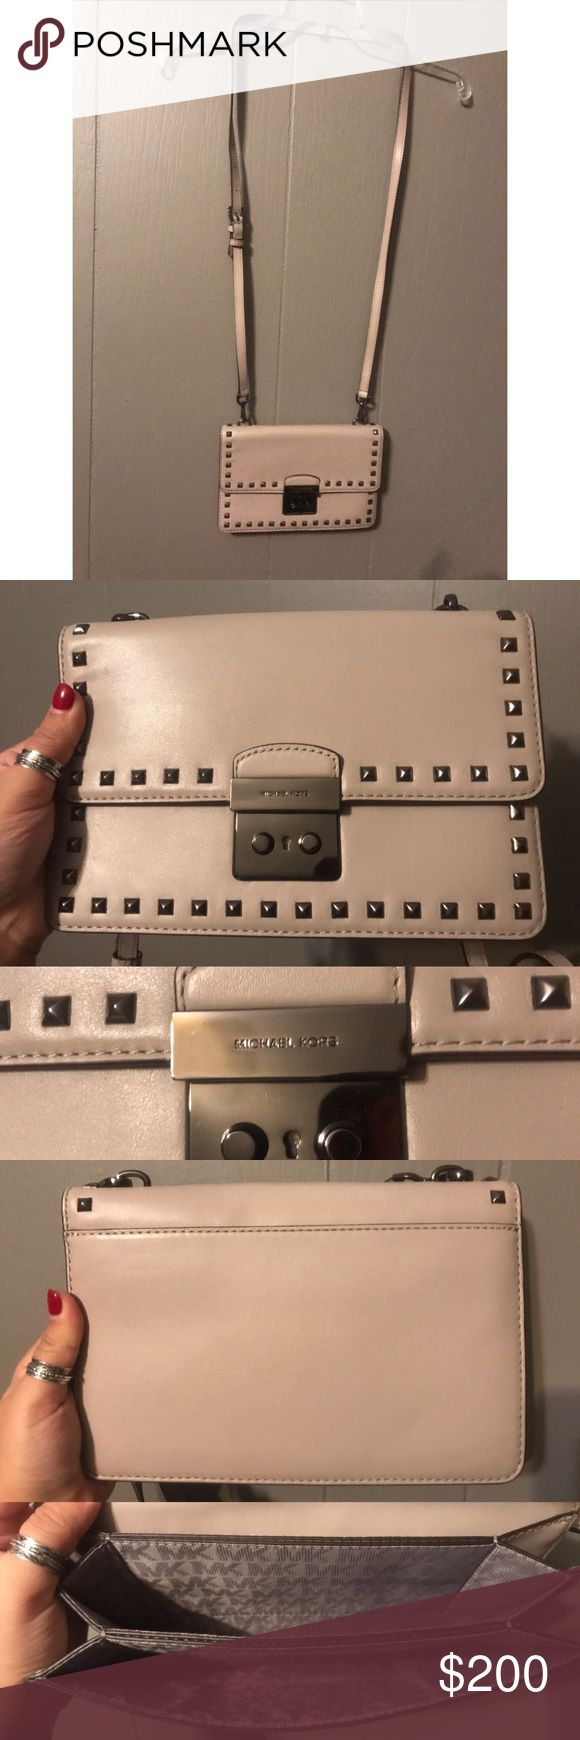 """MICHAEL MK Sloan Studded Gusset Cross Body- Large Brand new- with tags. MICHAEL Michael Kors Large Sloan Studded Gusset Leather Cross Body in the Color: Cement. Large sized bag; 9""""W x 6""""H x 1""""D Interior features lining, 3 gusseted pockets, 1 zip pocket and 6 card slots 21-1/4"""" to 25-1/4""""L adjustable crossbody strap Push-lock closure Exterior features gunmetal hardware, studded accents and 1 back pocket Silhouette is based off 5'9"""" model Leather; lining: polyester Michael Kors Bags Crossbody…"""